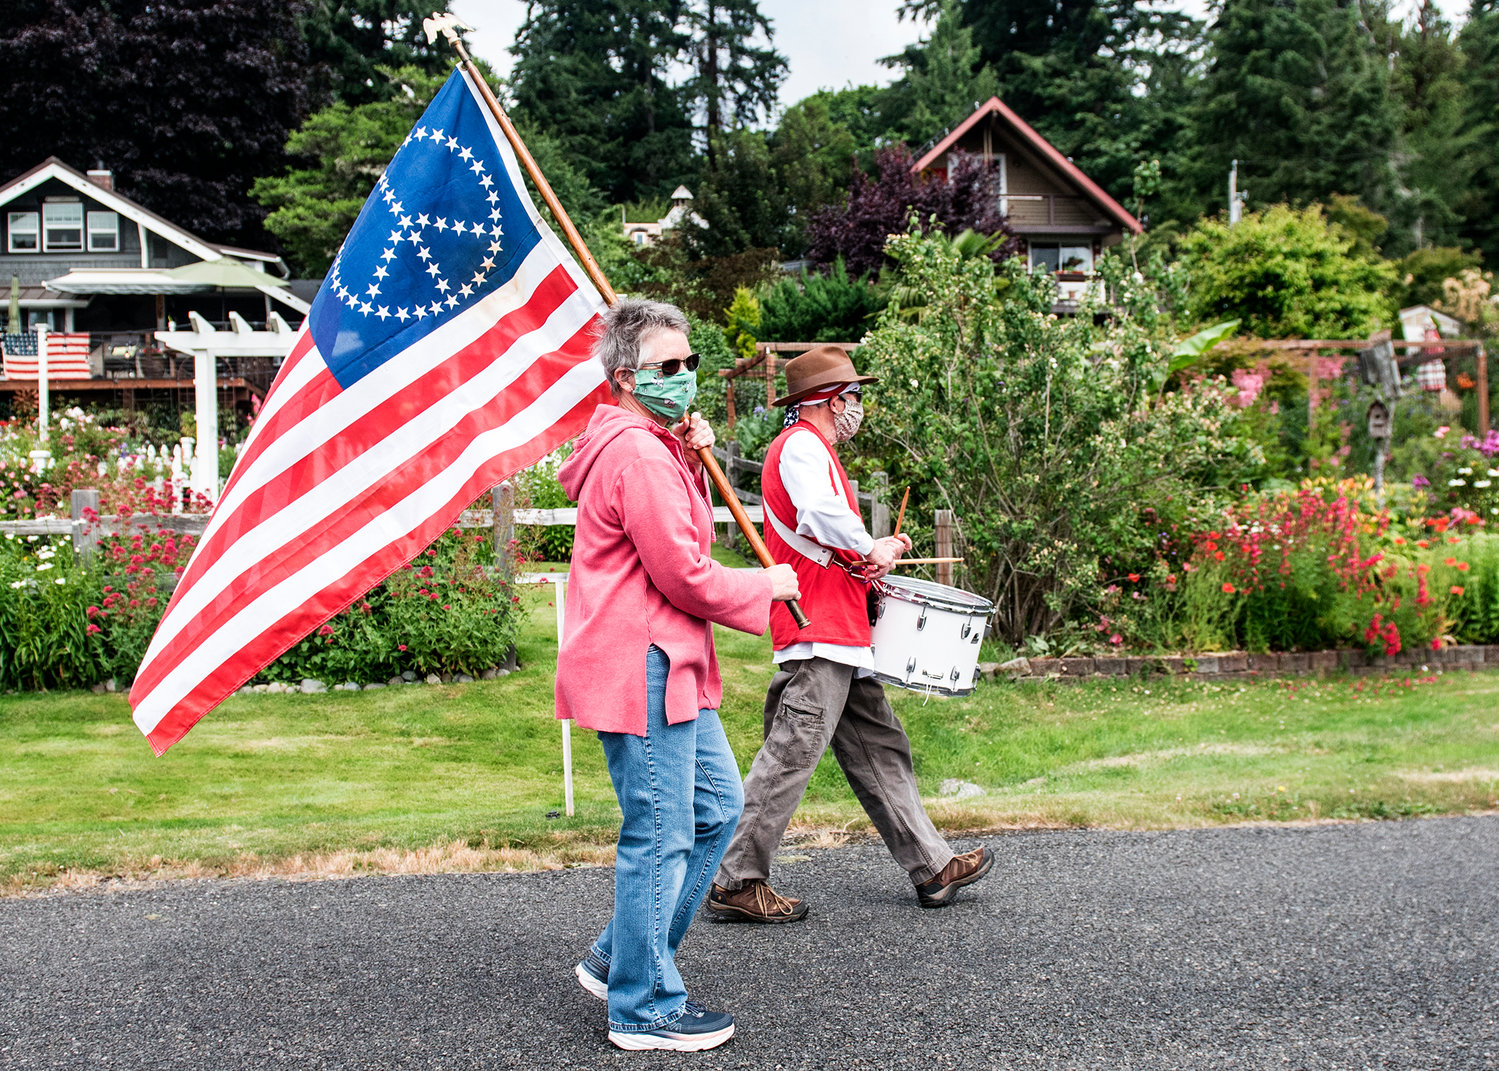 A scaled-back Fourth of July parade in Home, where roughly a third of the participants wore masks.